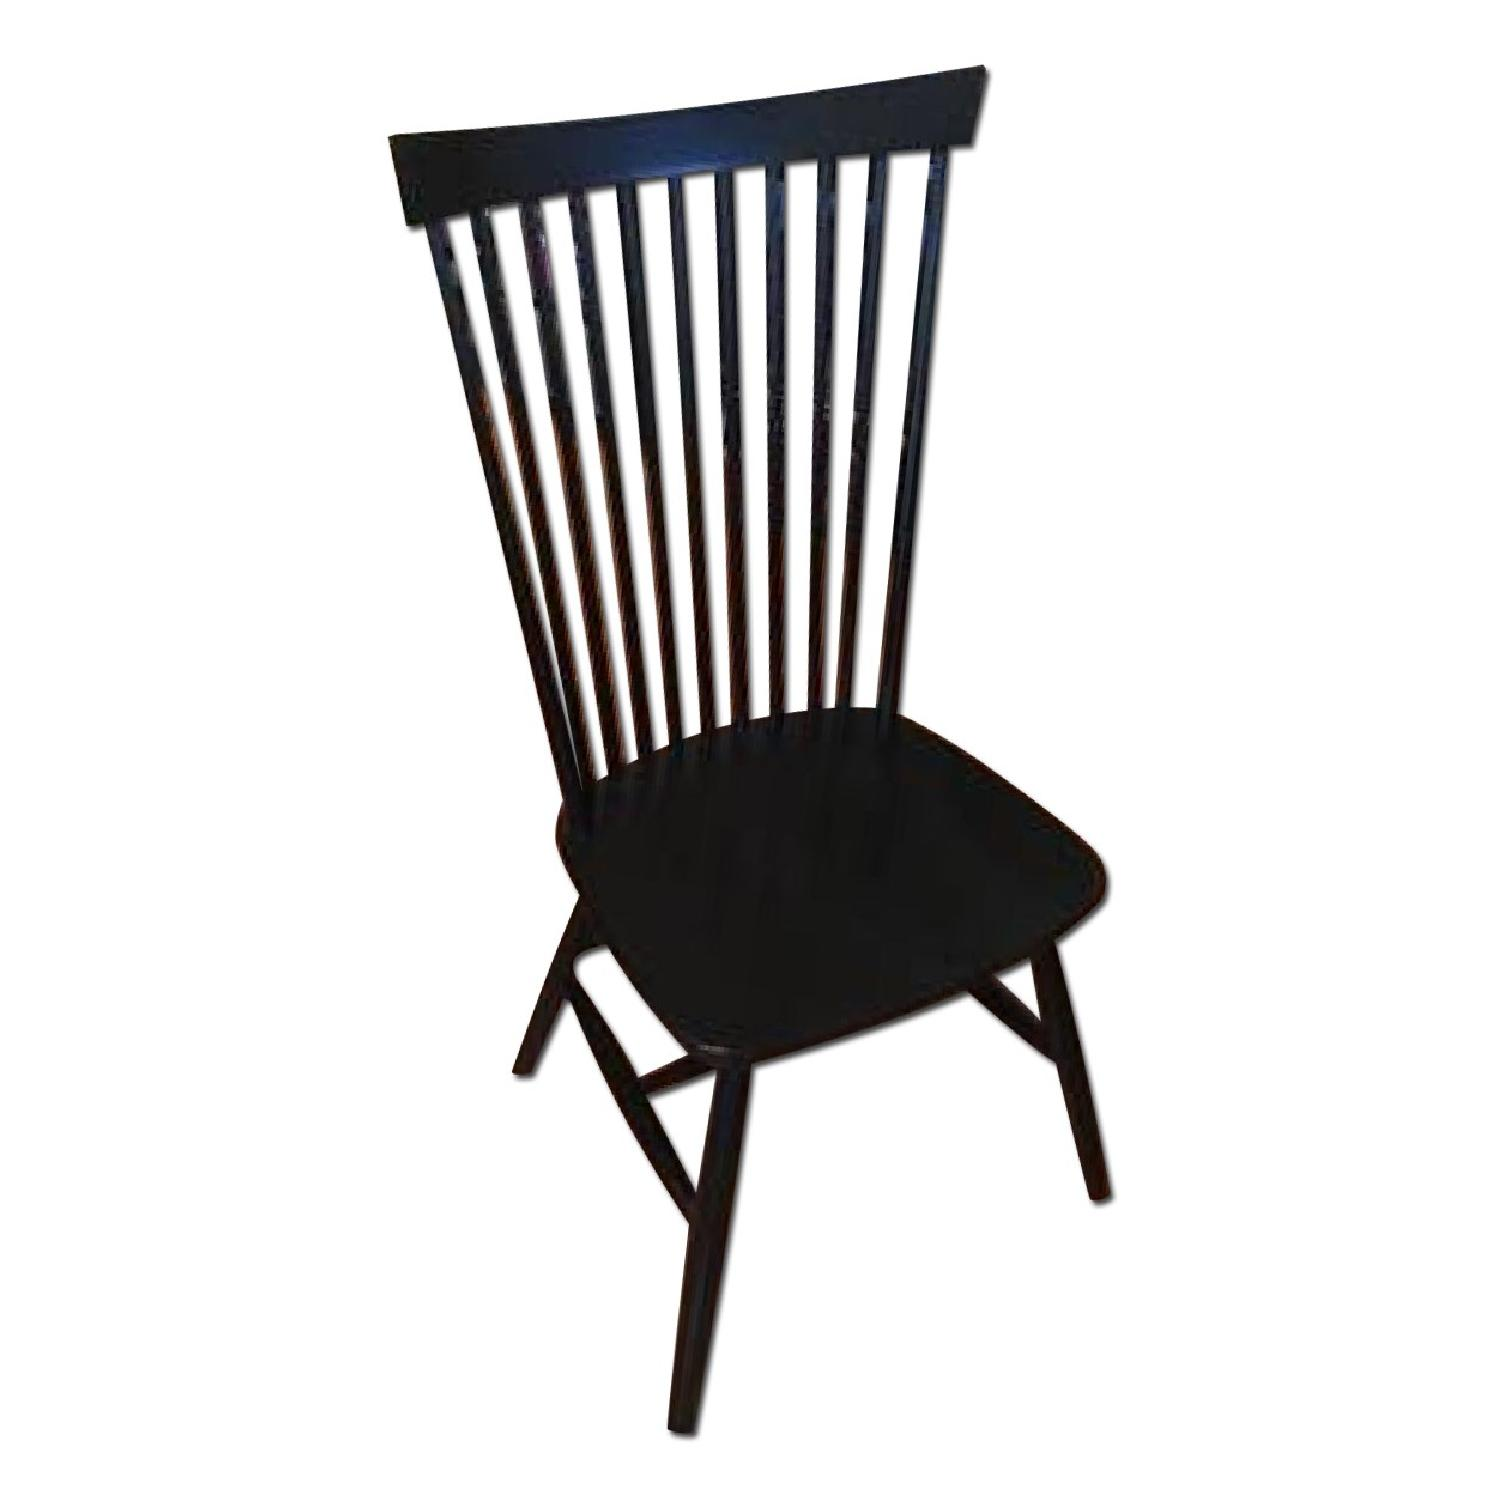 Crate & Barrel Marlow II Dining Chairs - image-0